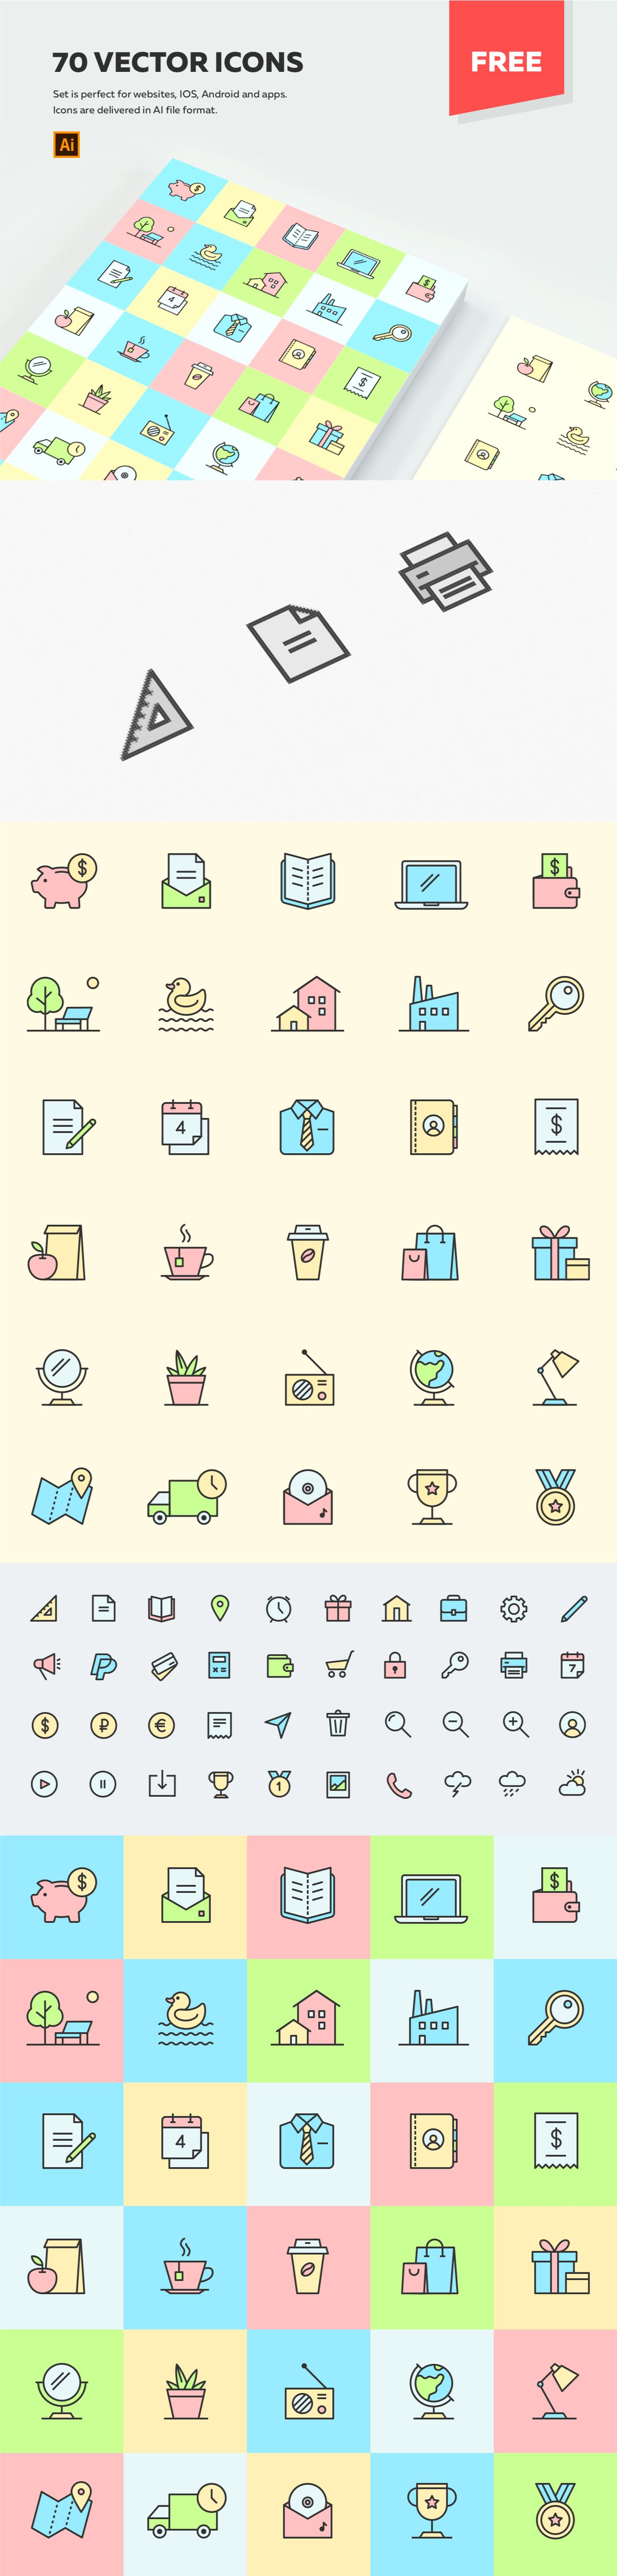 70 MULTIPURPOSE VECTOR ICONS Vector icons free, Vector